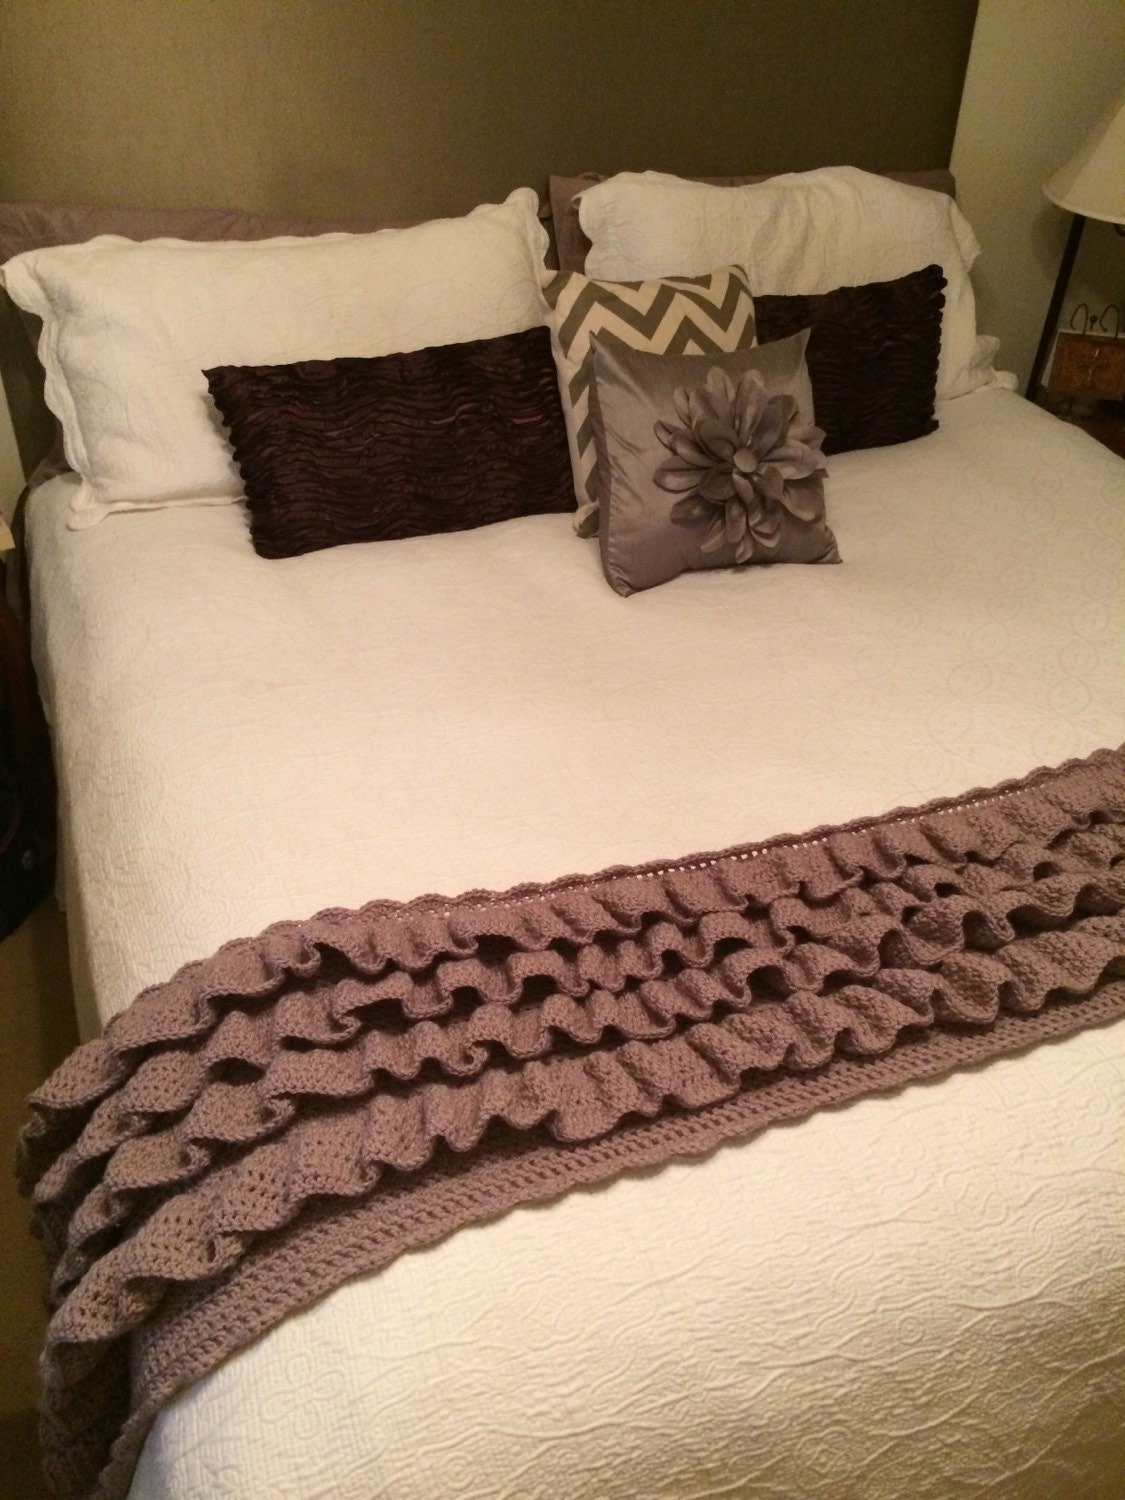 ruffled bed runner feet warmer king size by craftsbydd on etsy. Black Bedroom Furniture Sets. Home Design Ideas